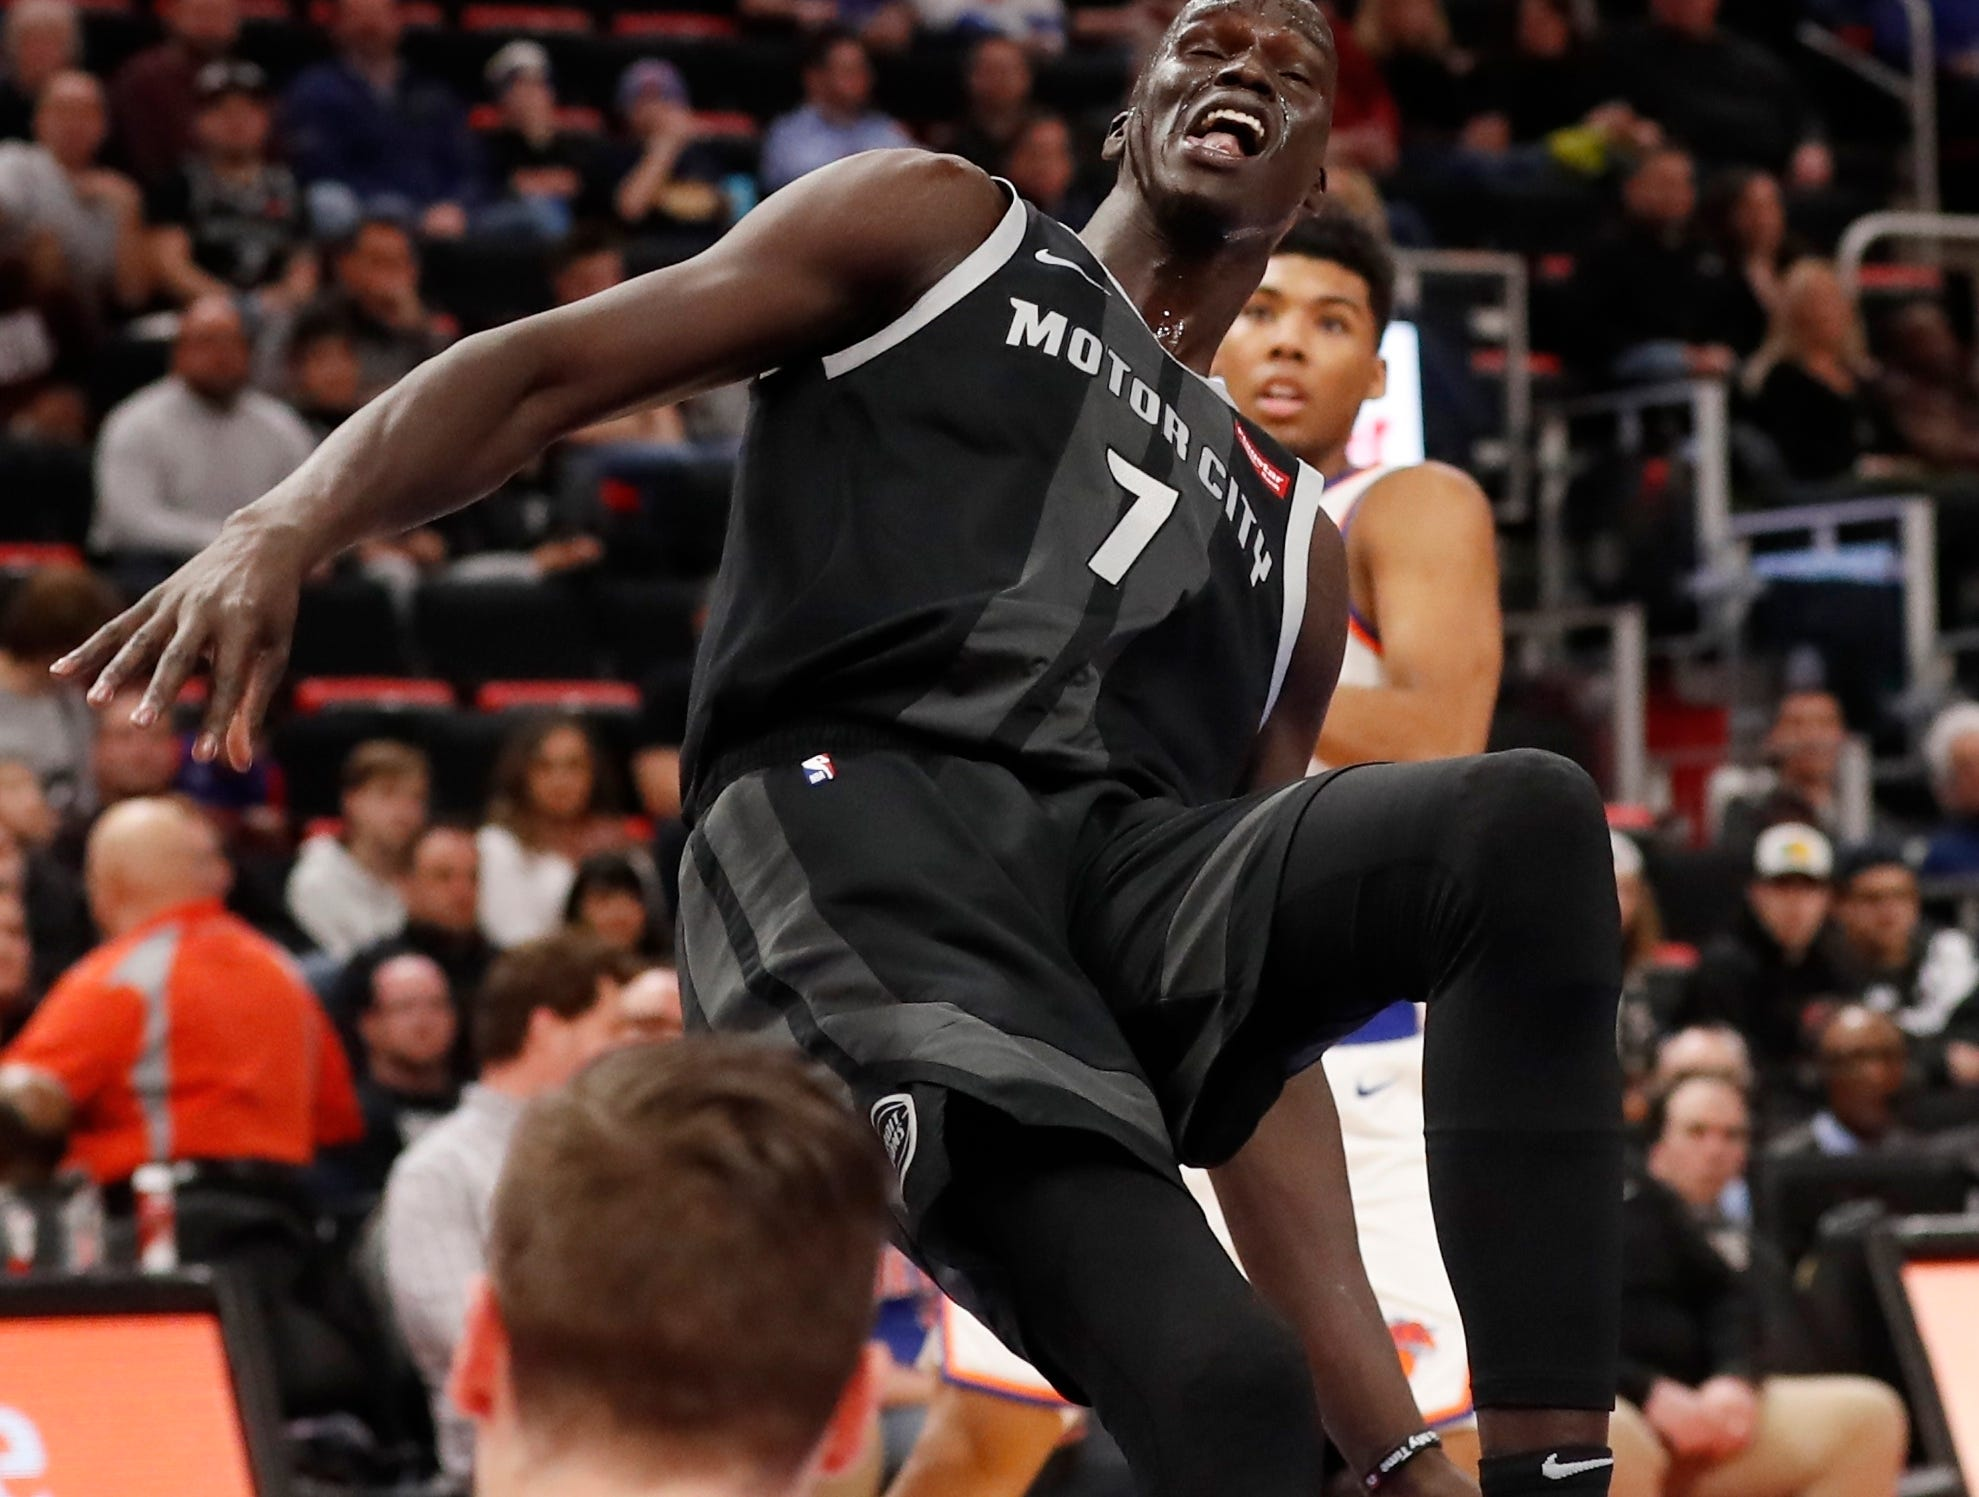 Detroit Pistons forward Thon Maker (7) is called for an offensive foul after running into New York Knicks forward Mario Hezonja (8) during the first half of an NBA basketball game Friday, Feb. 8, 2019, in Detroit.